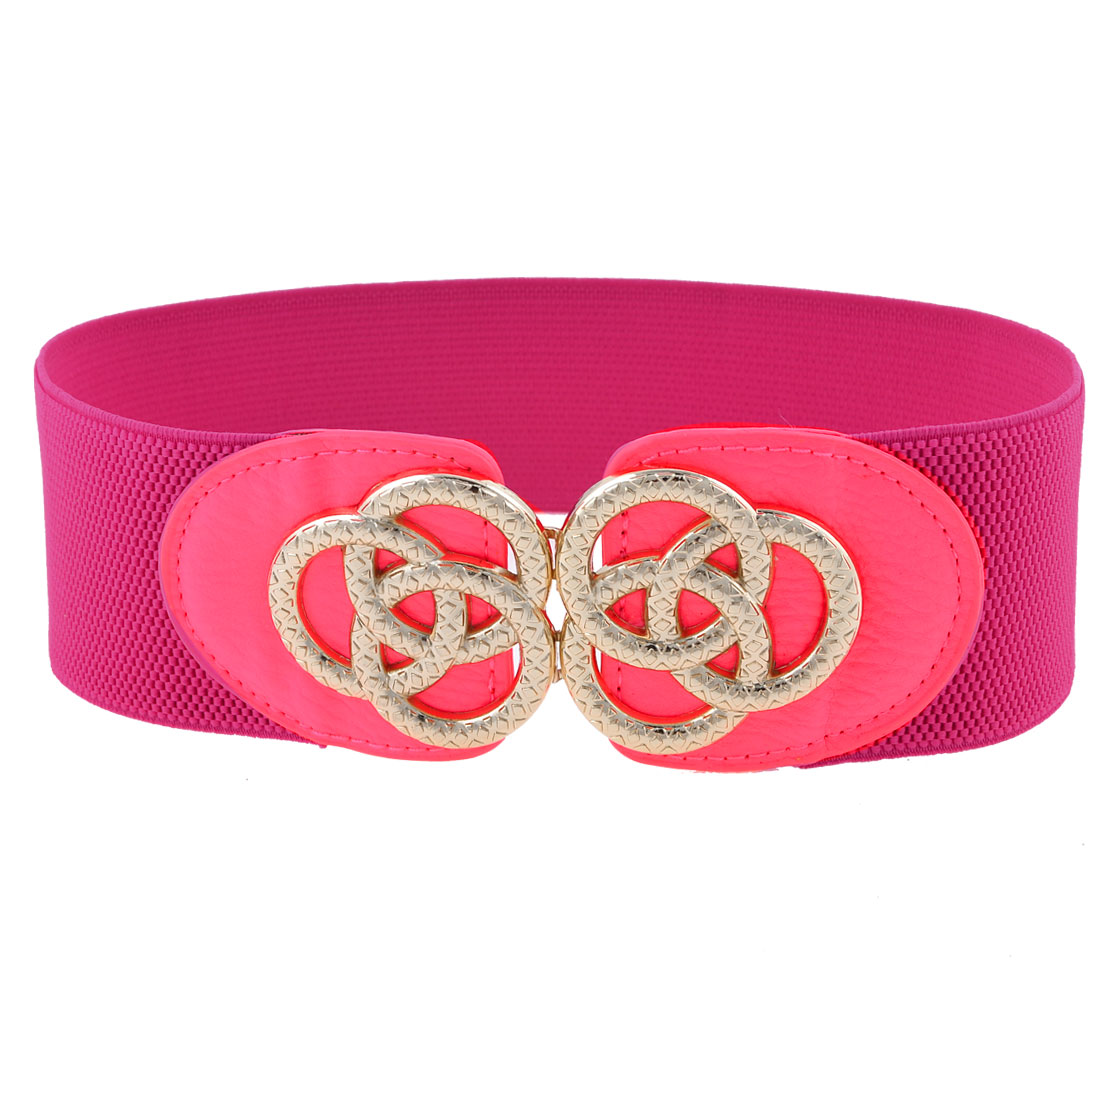 Fuchsia Faux Leather Front Ring Interlock Buckle 6cm Wide Waist Belt for Ladies